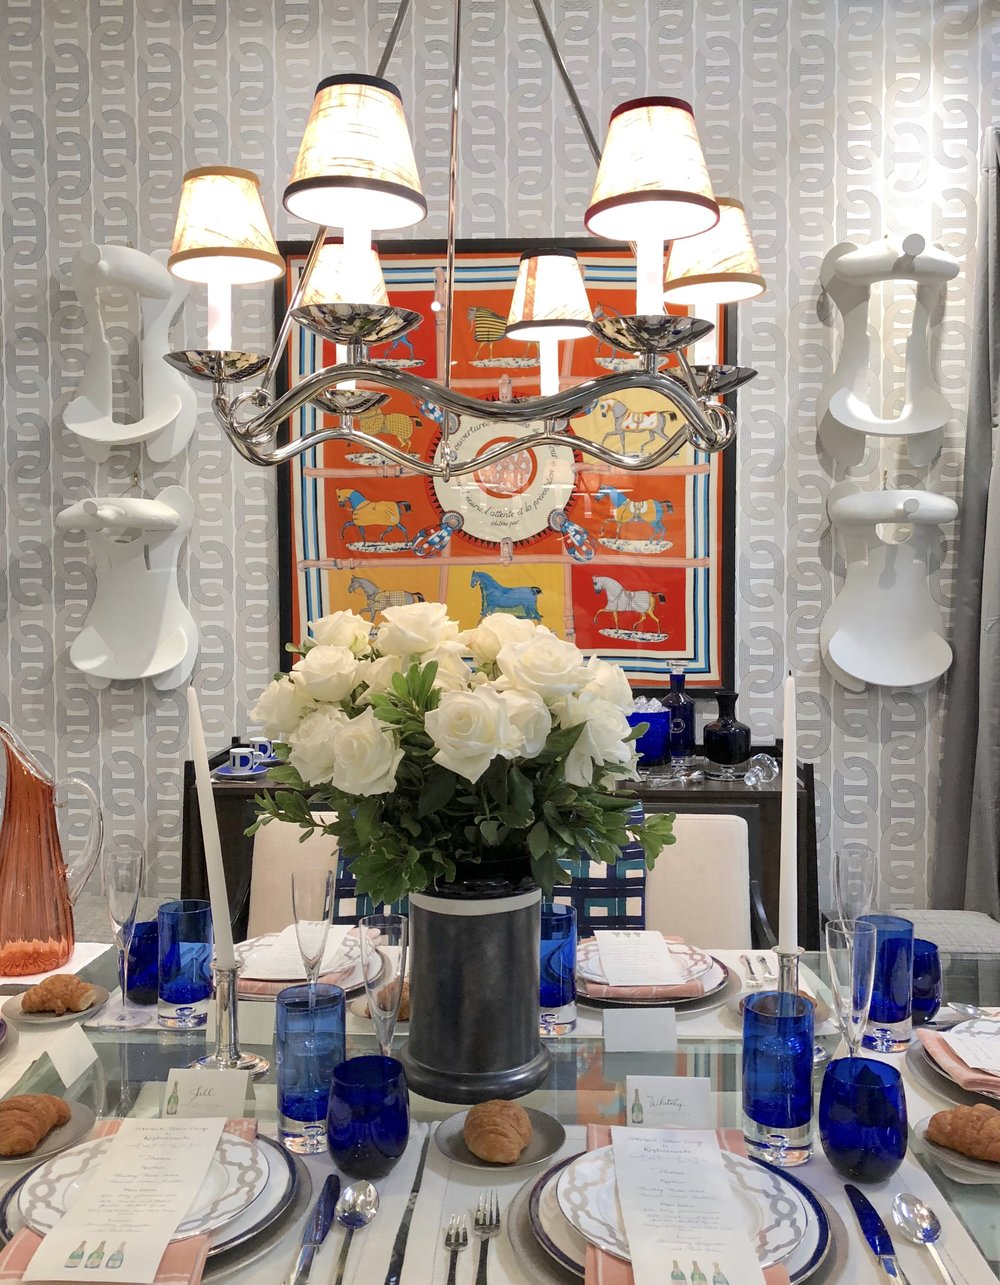 Orange and cobalt blue color scheme used in equestrian themed dining room, designed by Jonathan Savage.